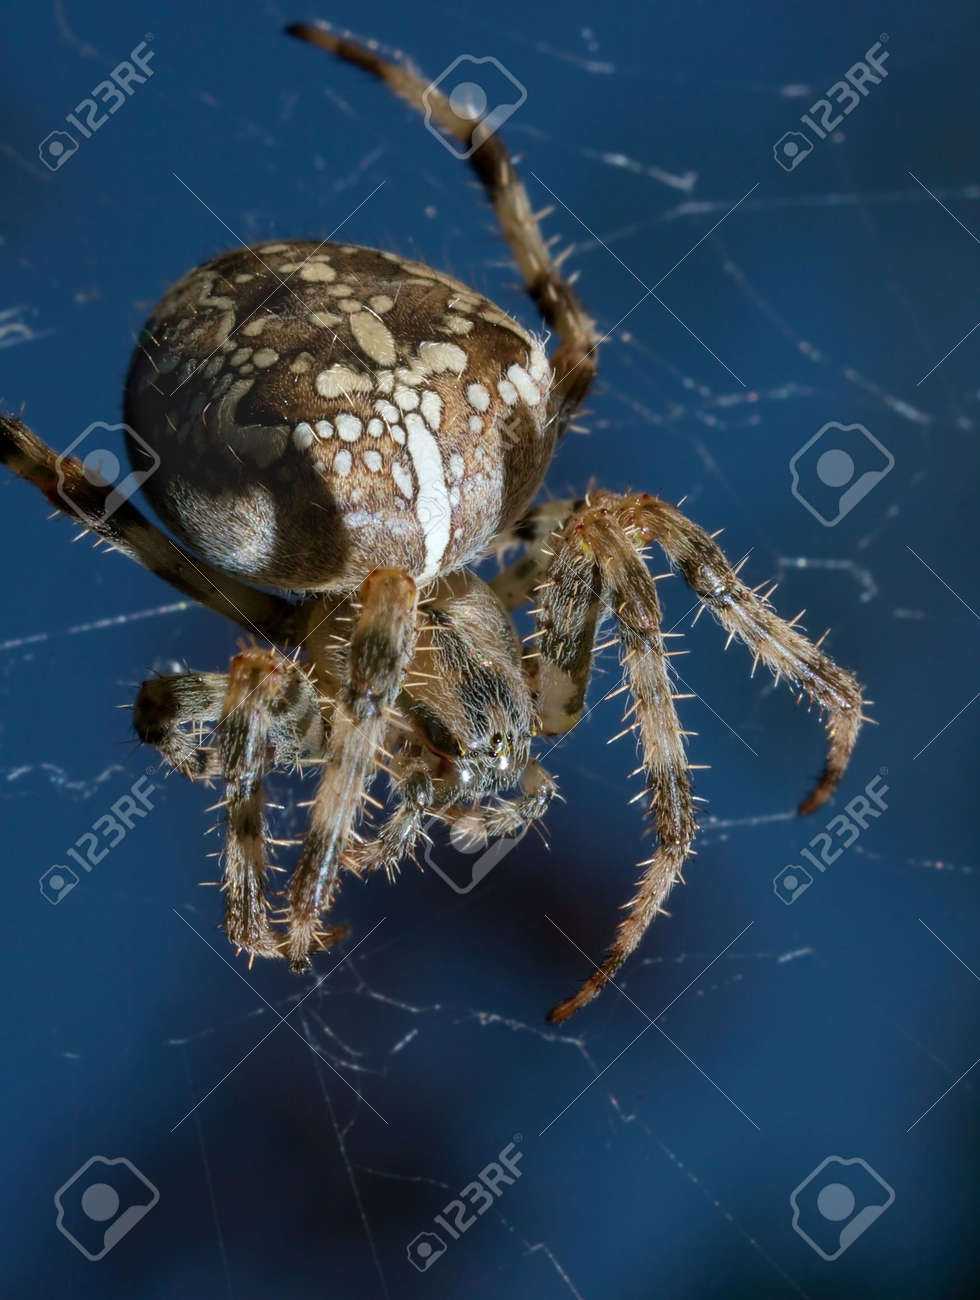 Closeup of a cross spider in its web Stock Photo - 2330129